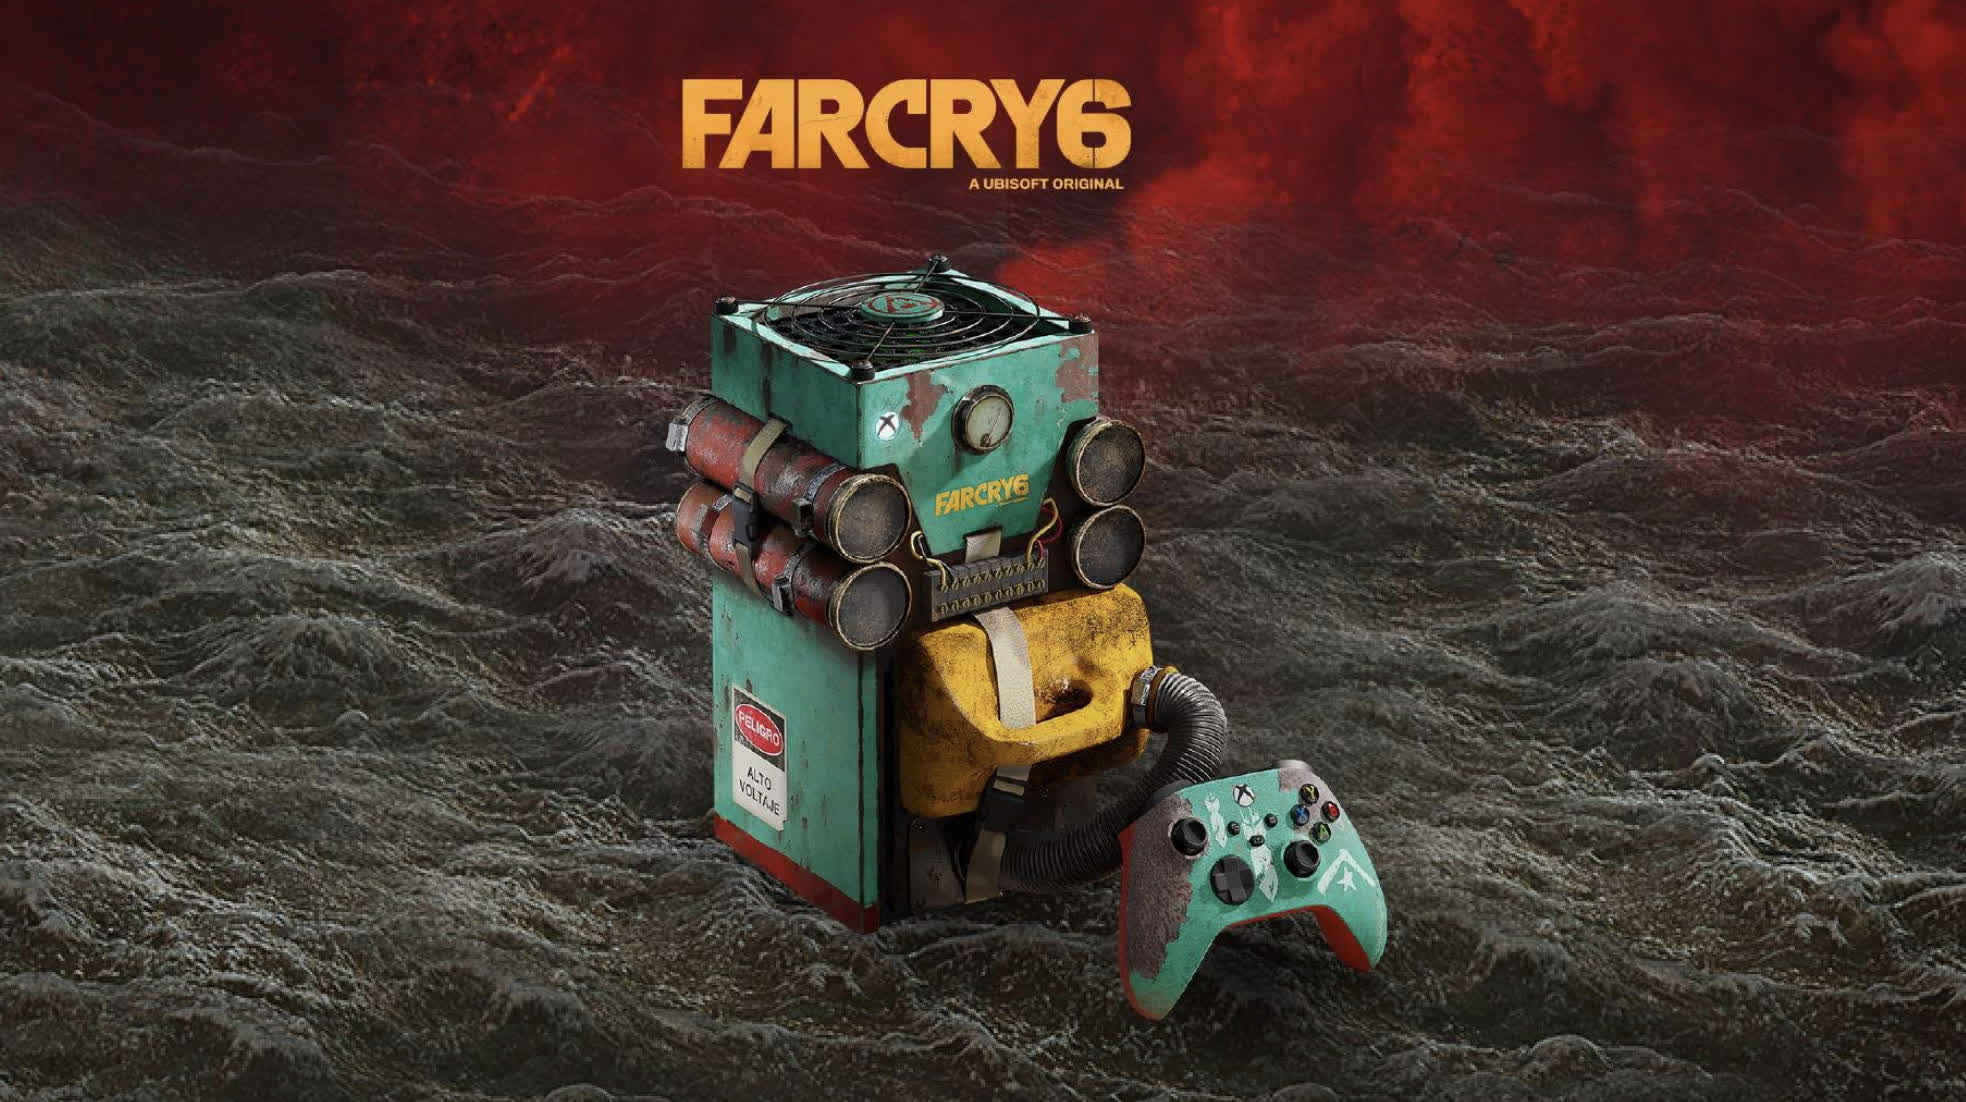 Microsoft is offering the chance to win this Far Cry 6-themed Xbox Series X alongside a 77-inch TV